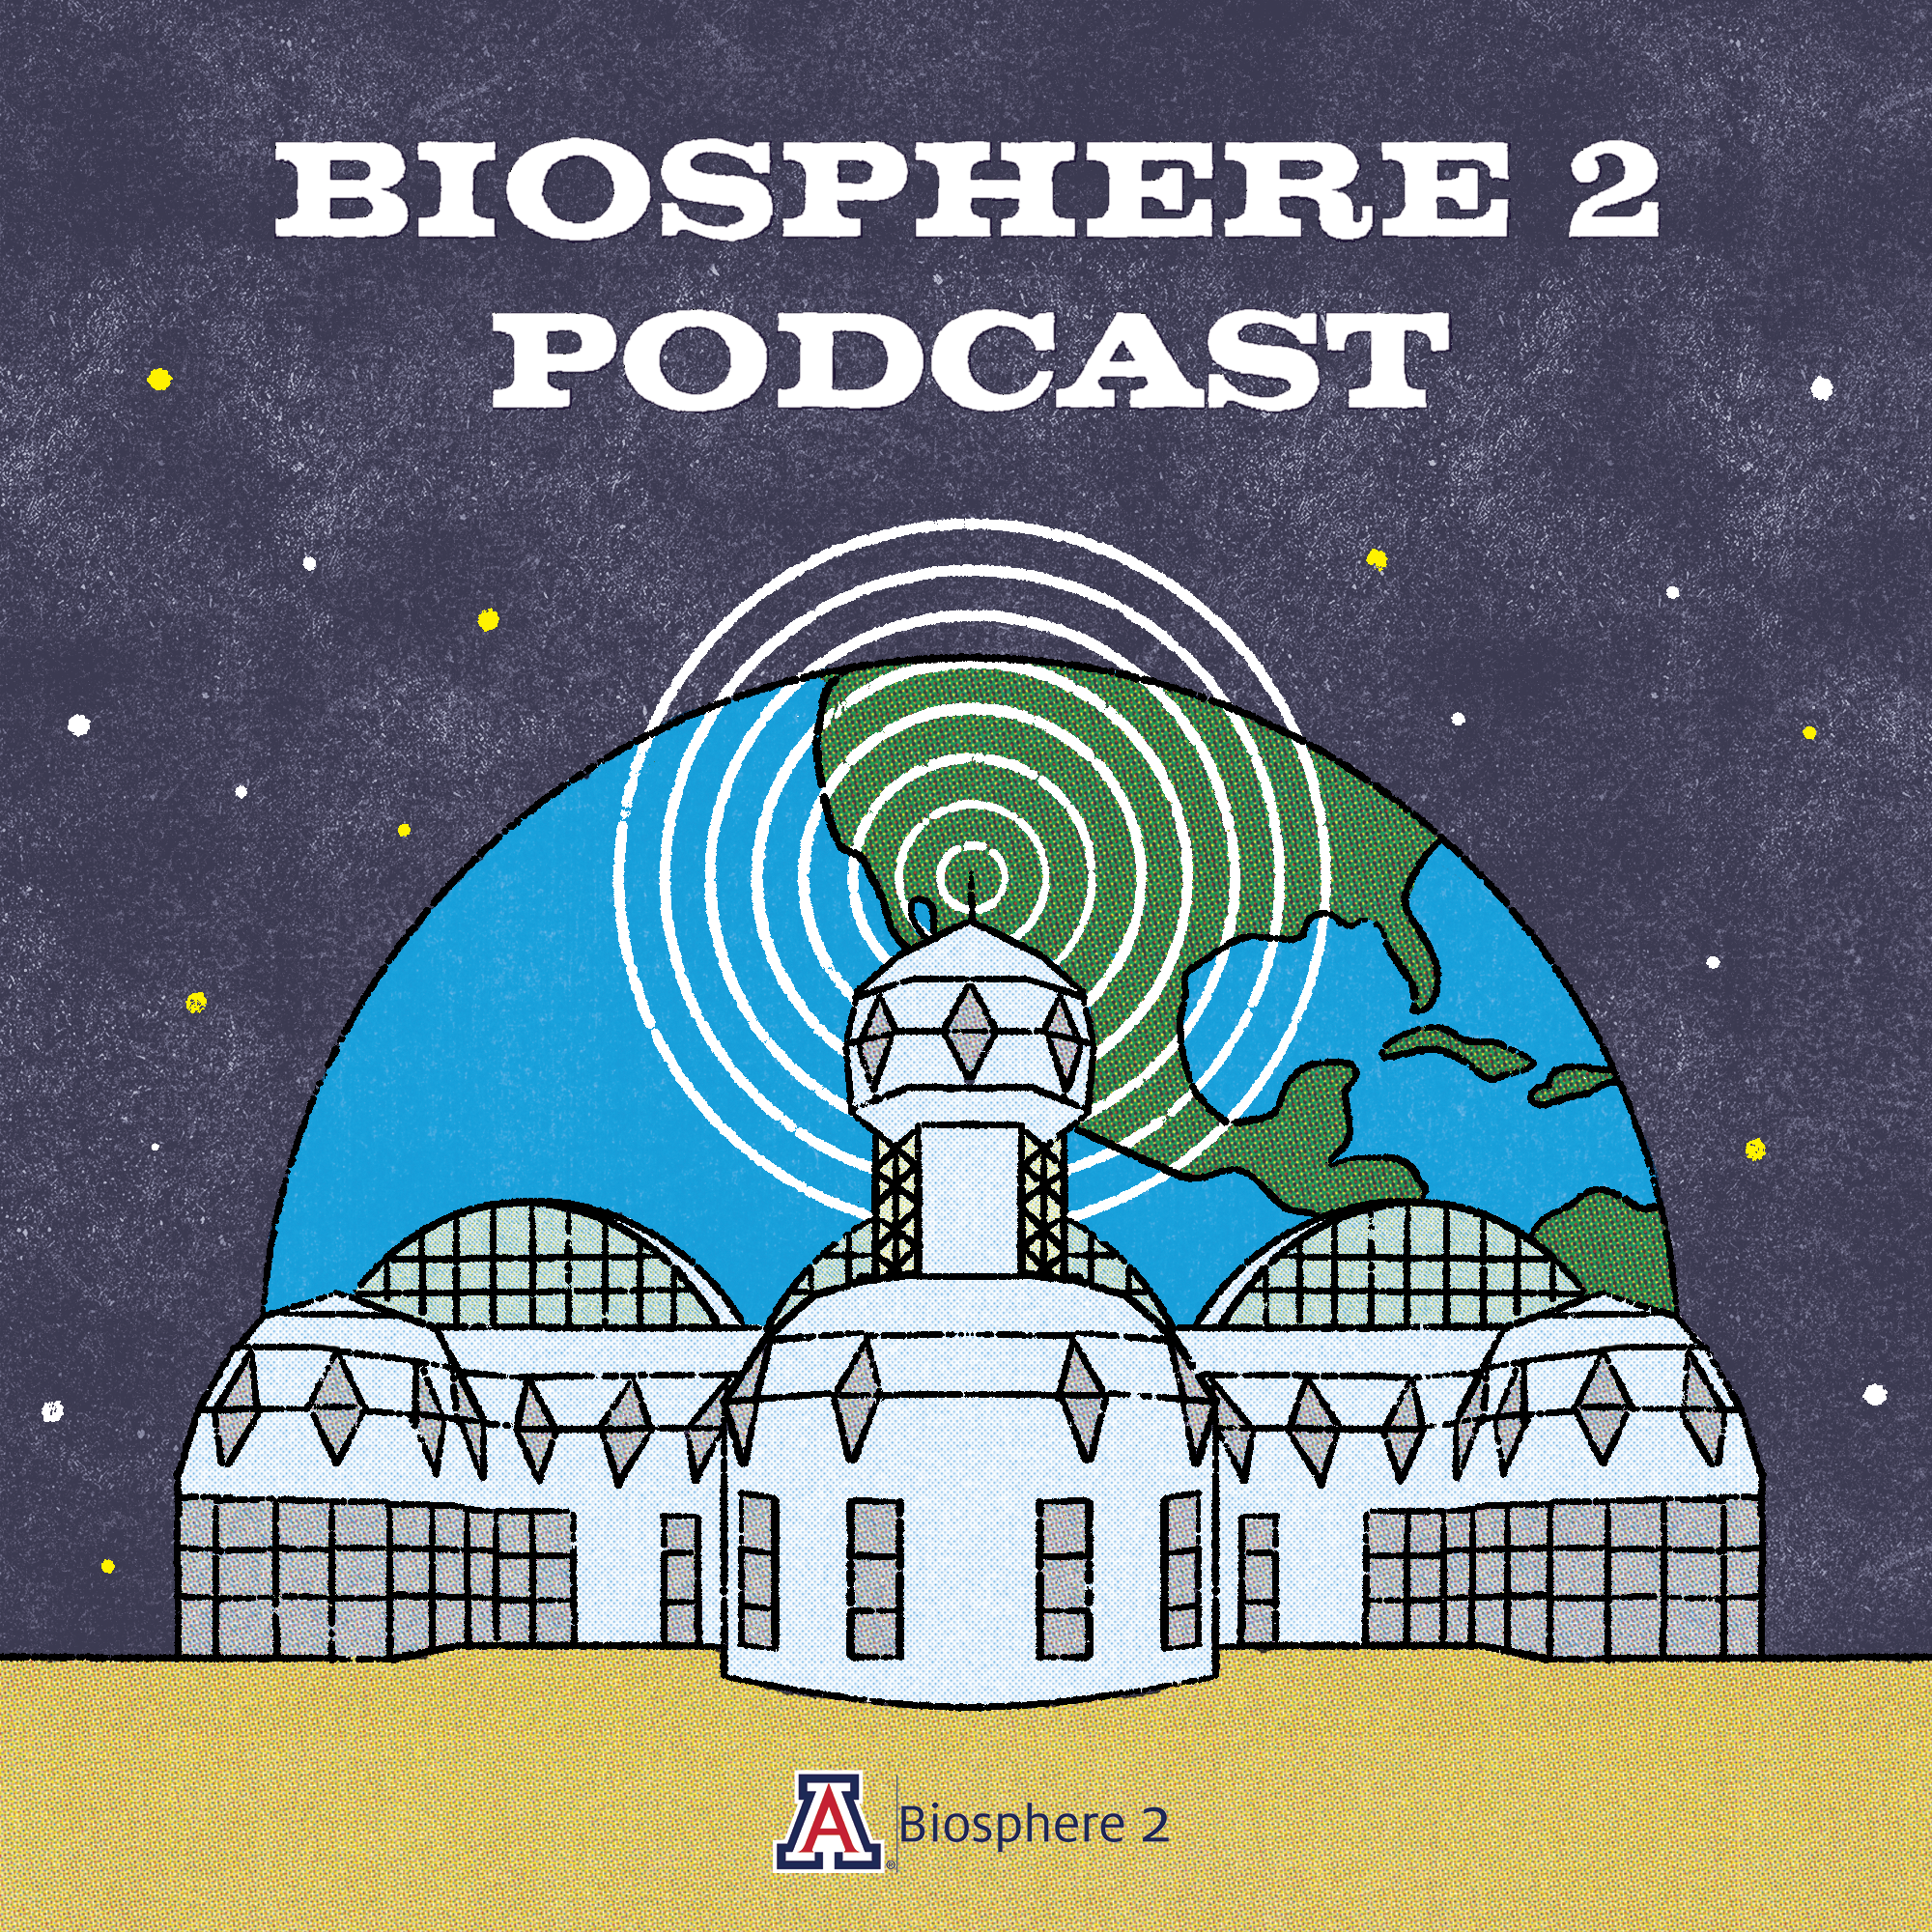 Biosphere 2 Podcast show image